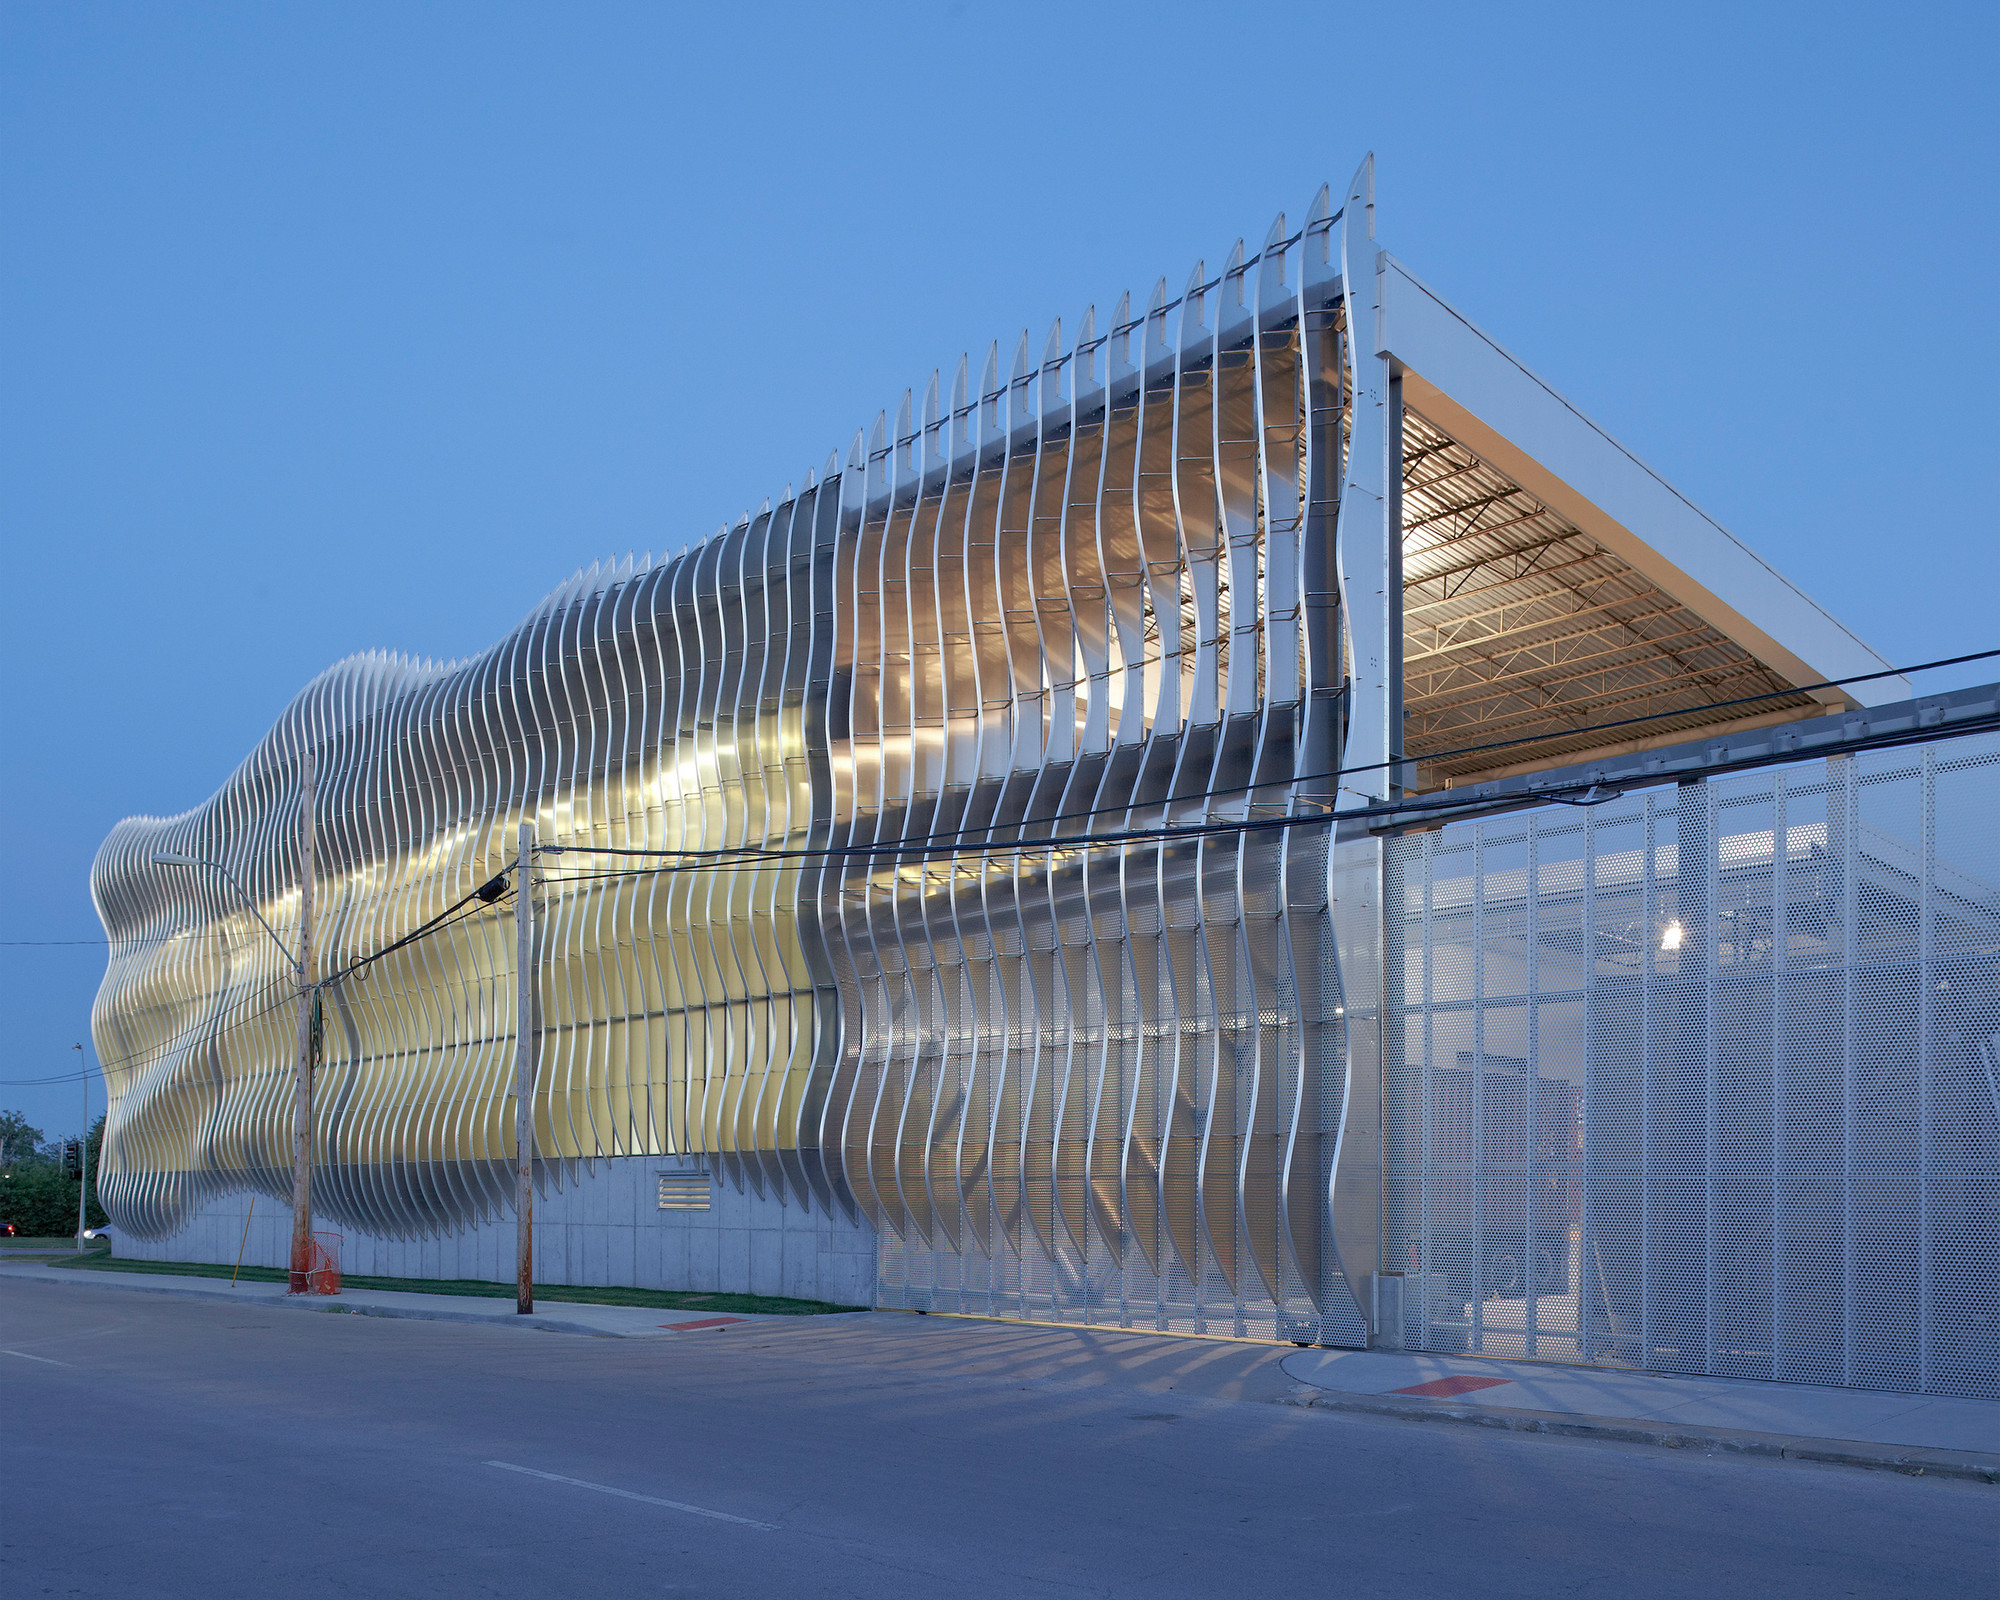 Zahner Launches Software for Design and Fabrication, Original design by Crawford Architects on the Zahner Headquarters in North America / Mike Sinclair. Image Courtesy of Zahner